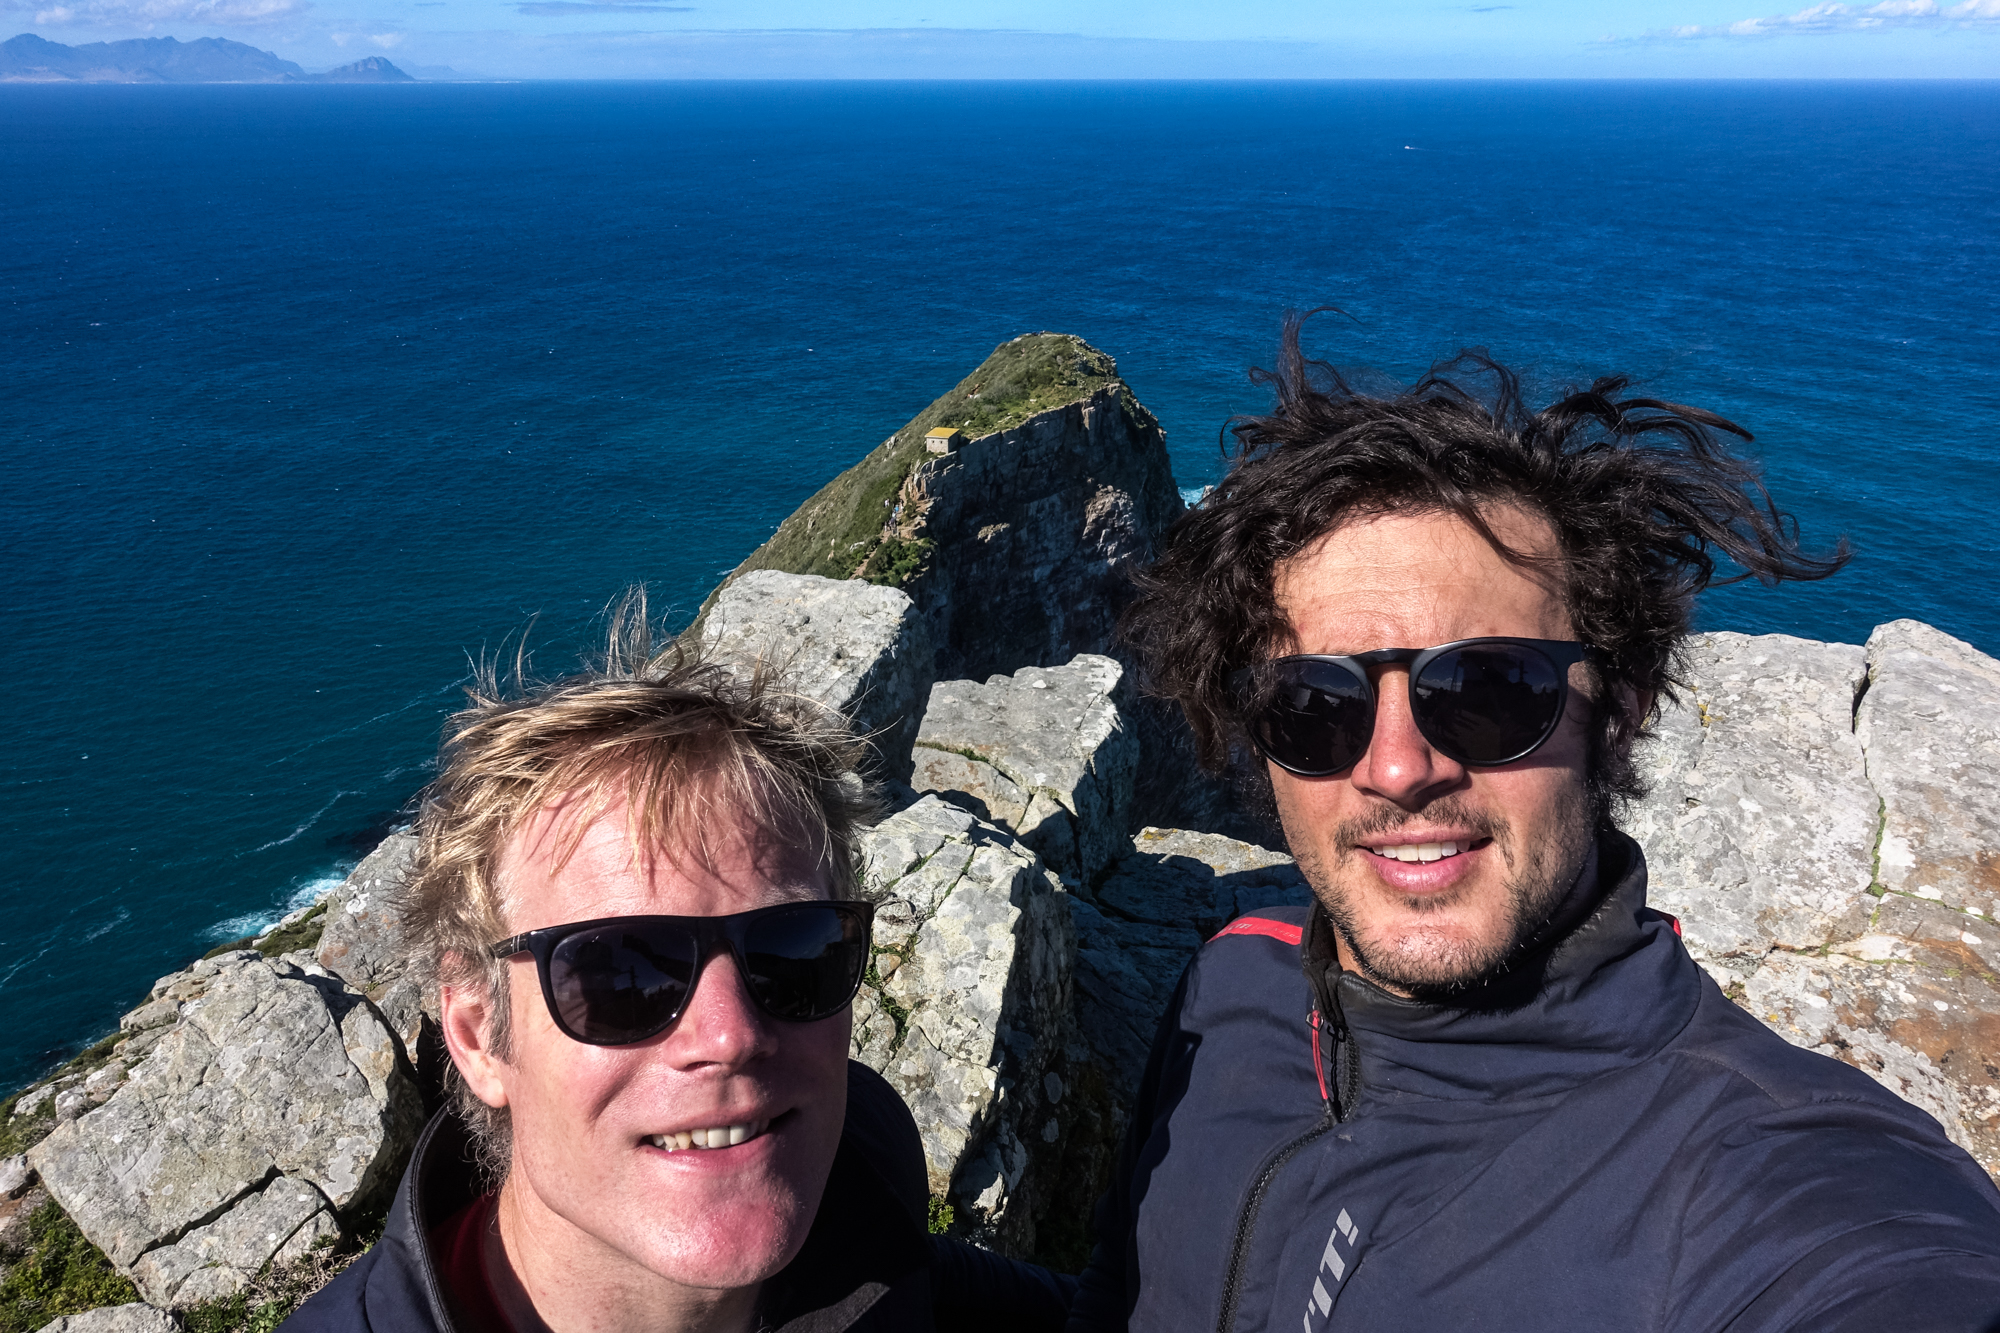 We ran out of continent. Cape of Good Hope.